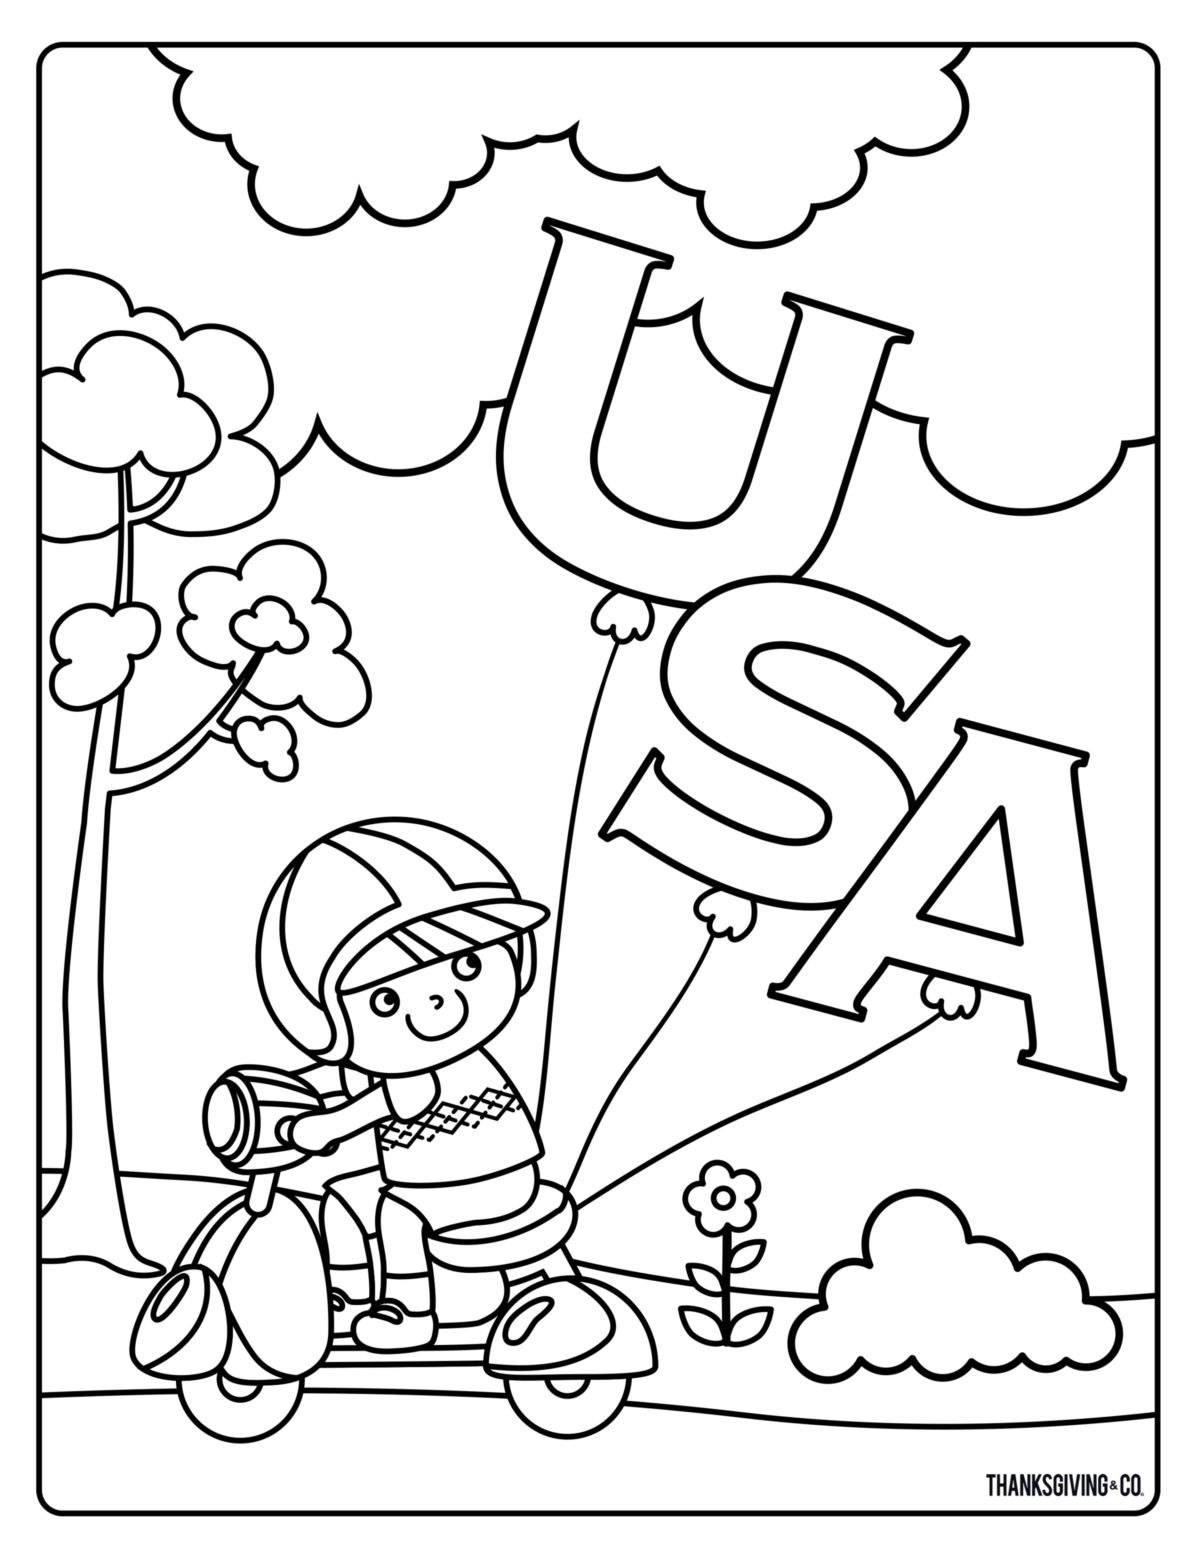 Free Memorial Day Coloring Pages For Kids